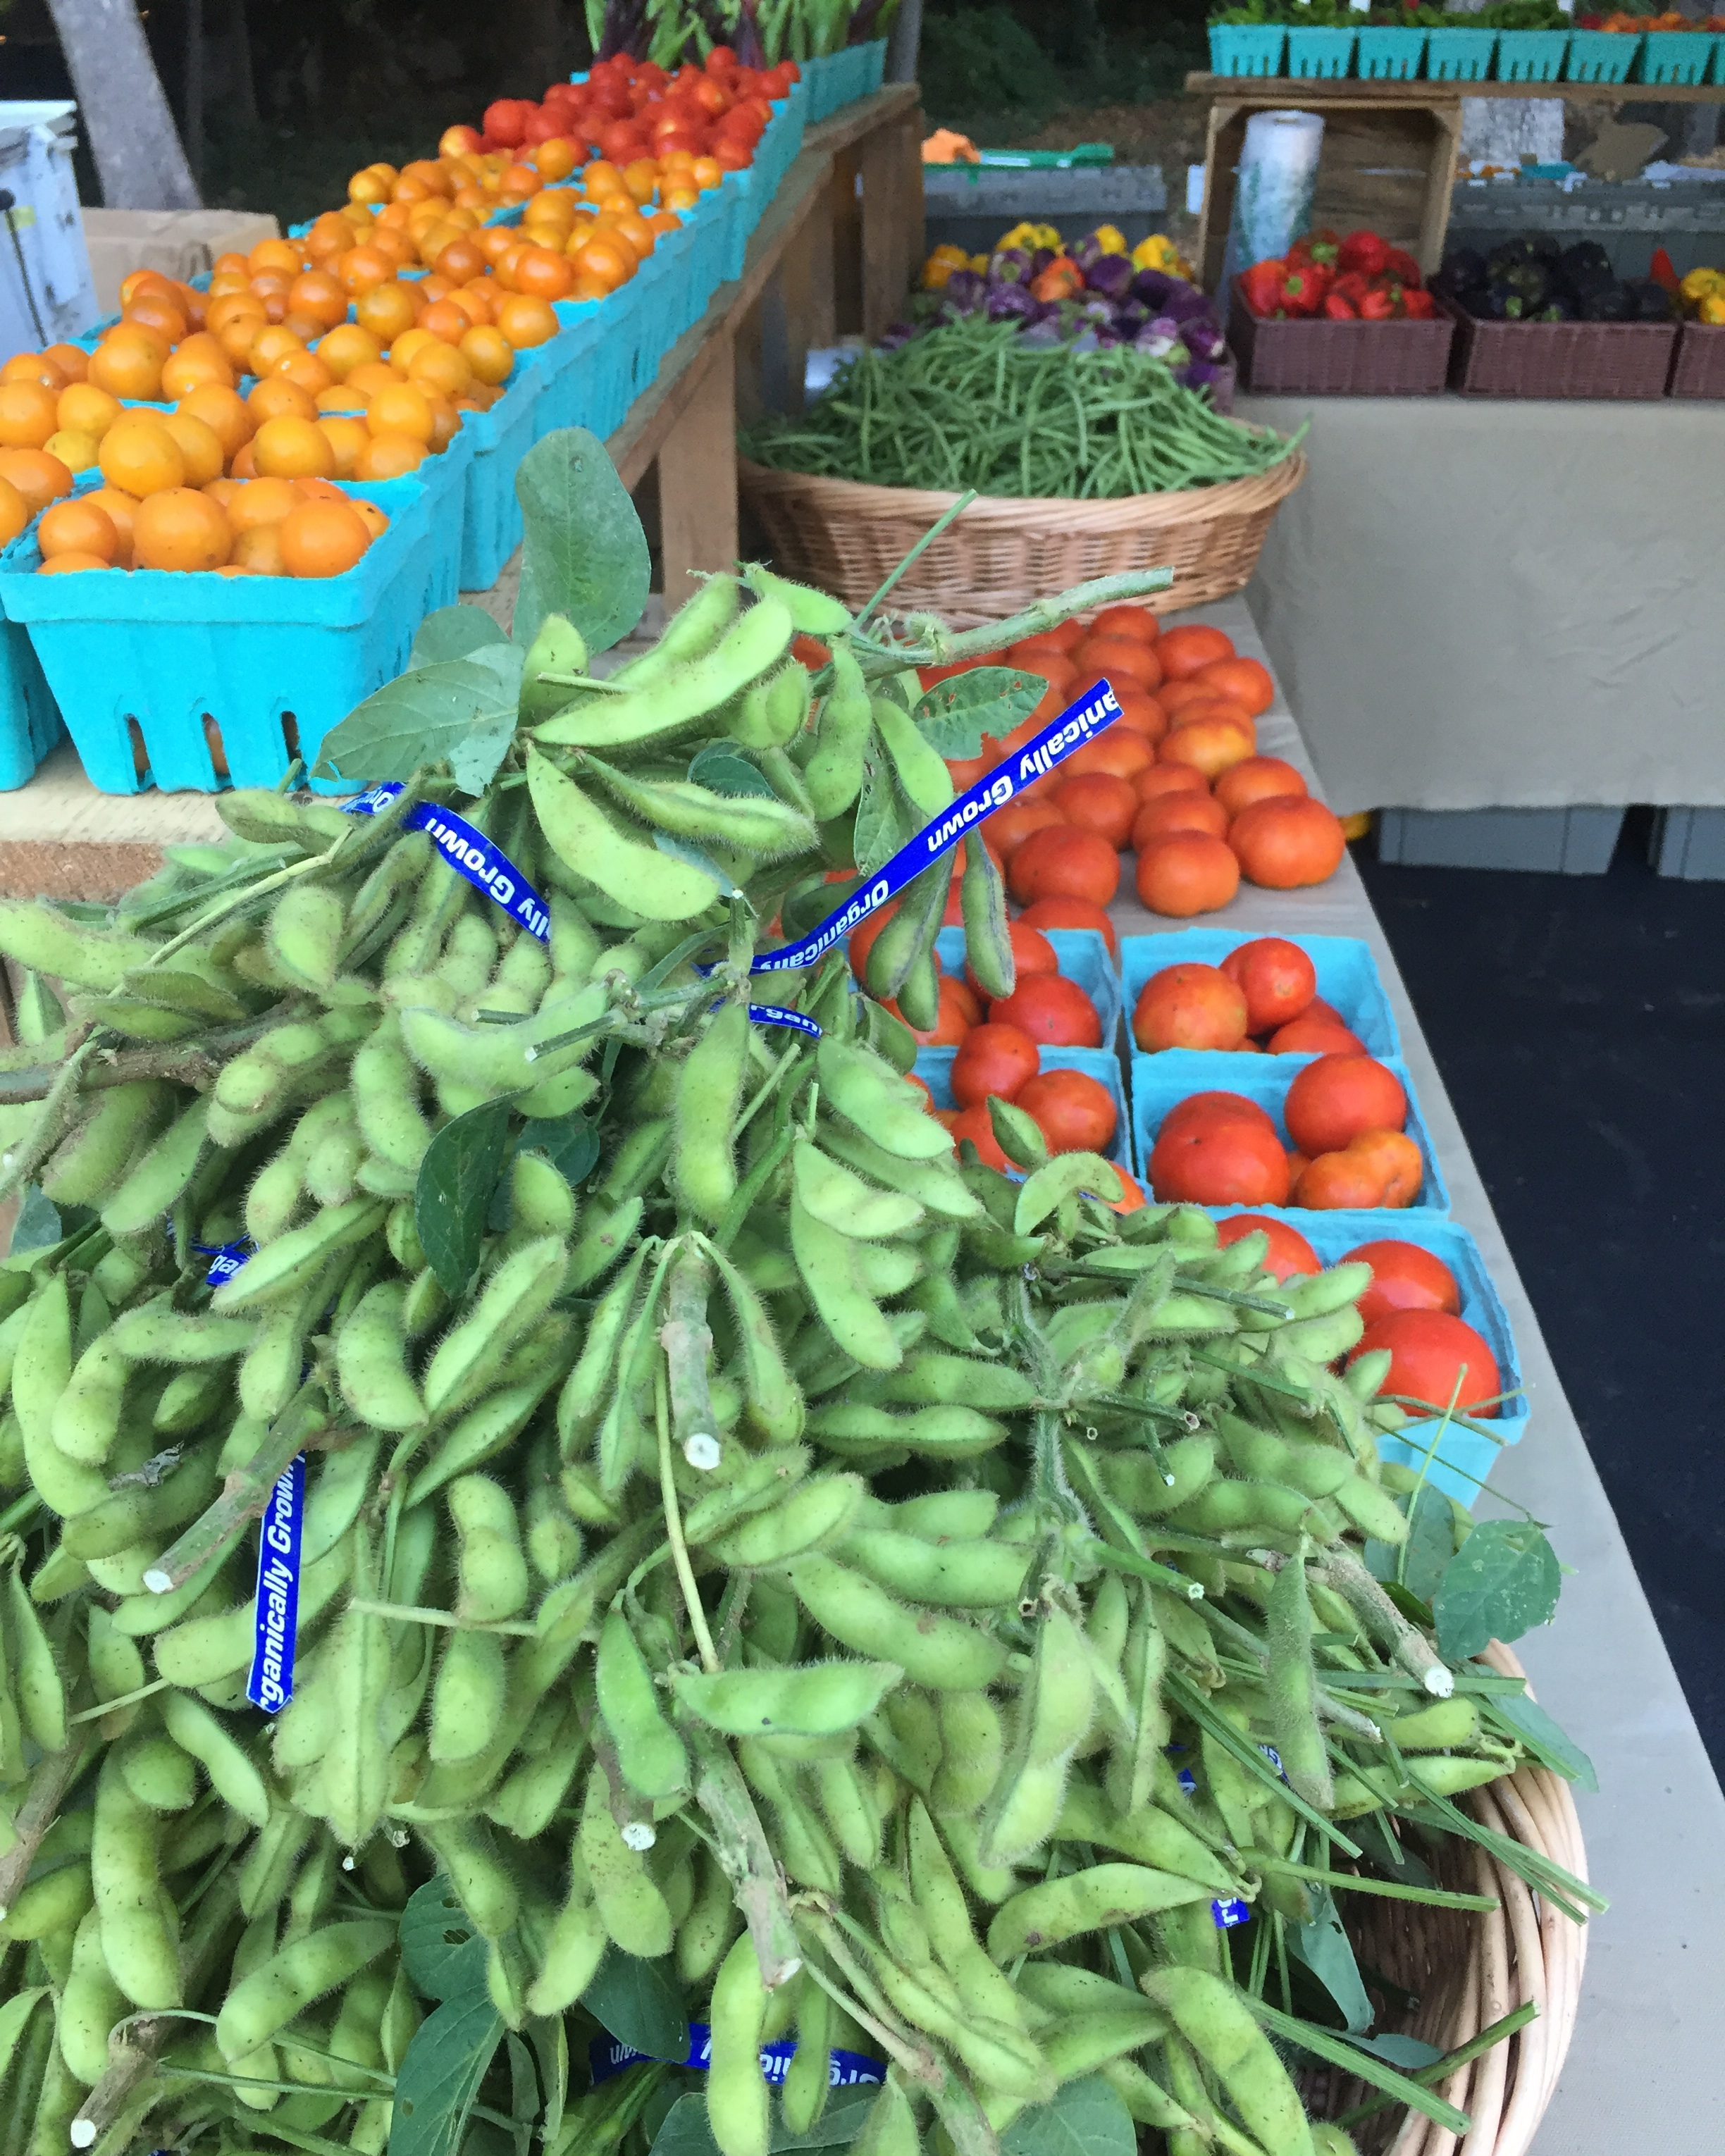 You can find a variety of in-season produce at PRFM including edamame grown by Rodgers Greens and Roots.